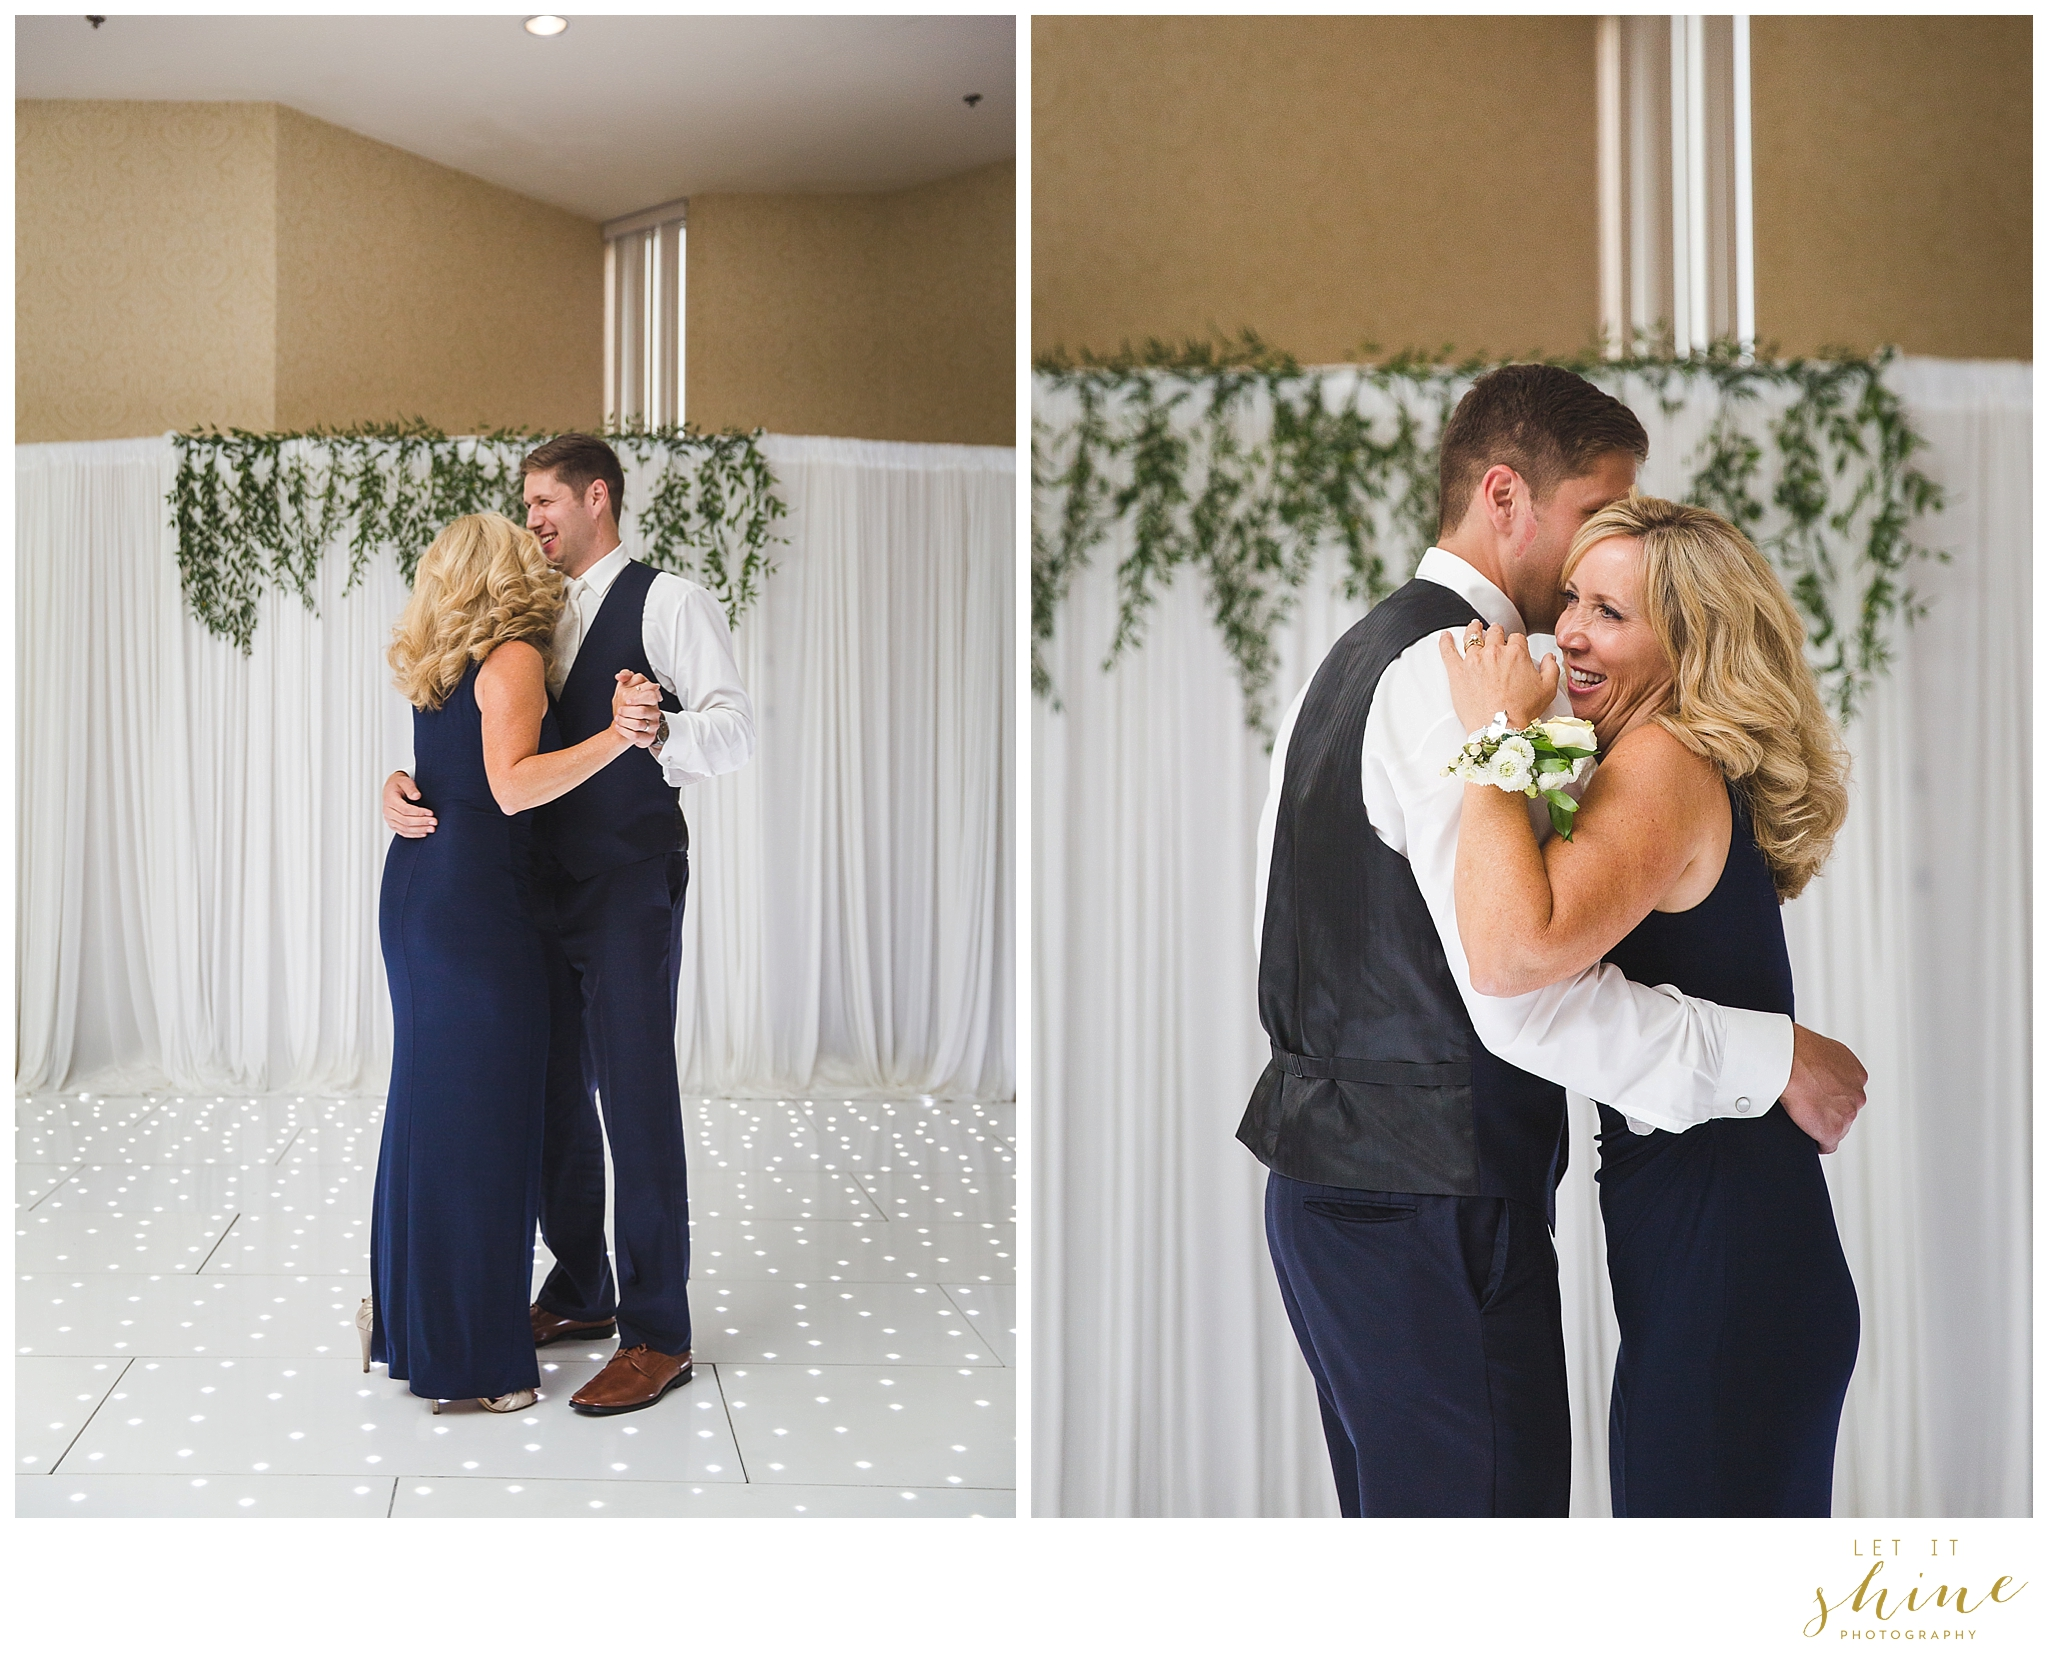 The Grove Hotel Boise Wedding 2017 Let it Shine Photography-1197.jpg